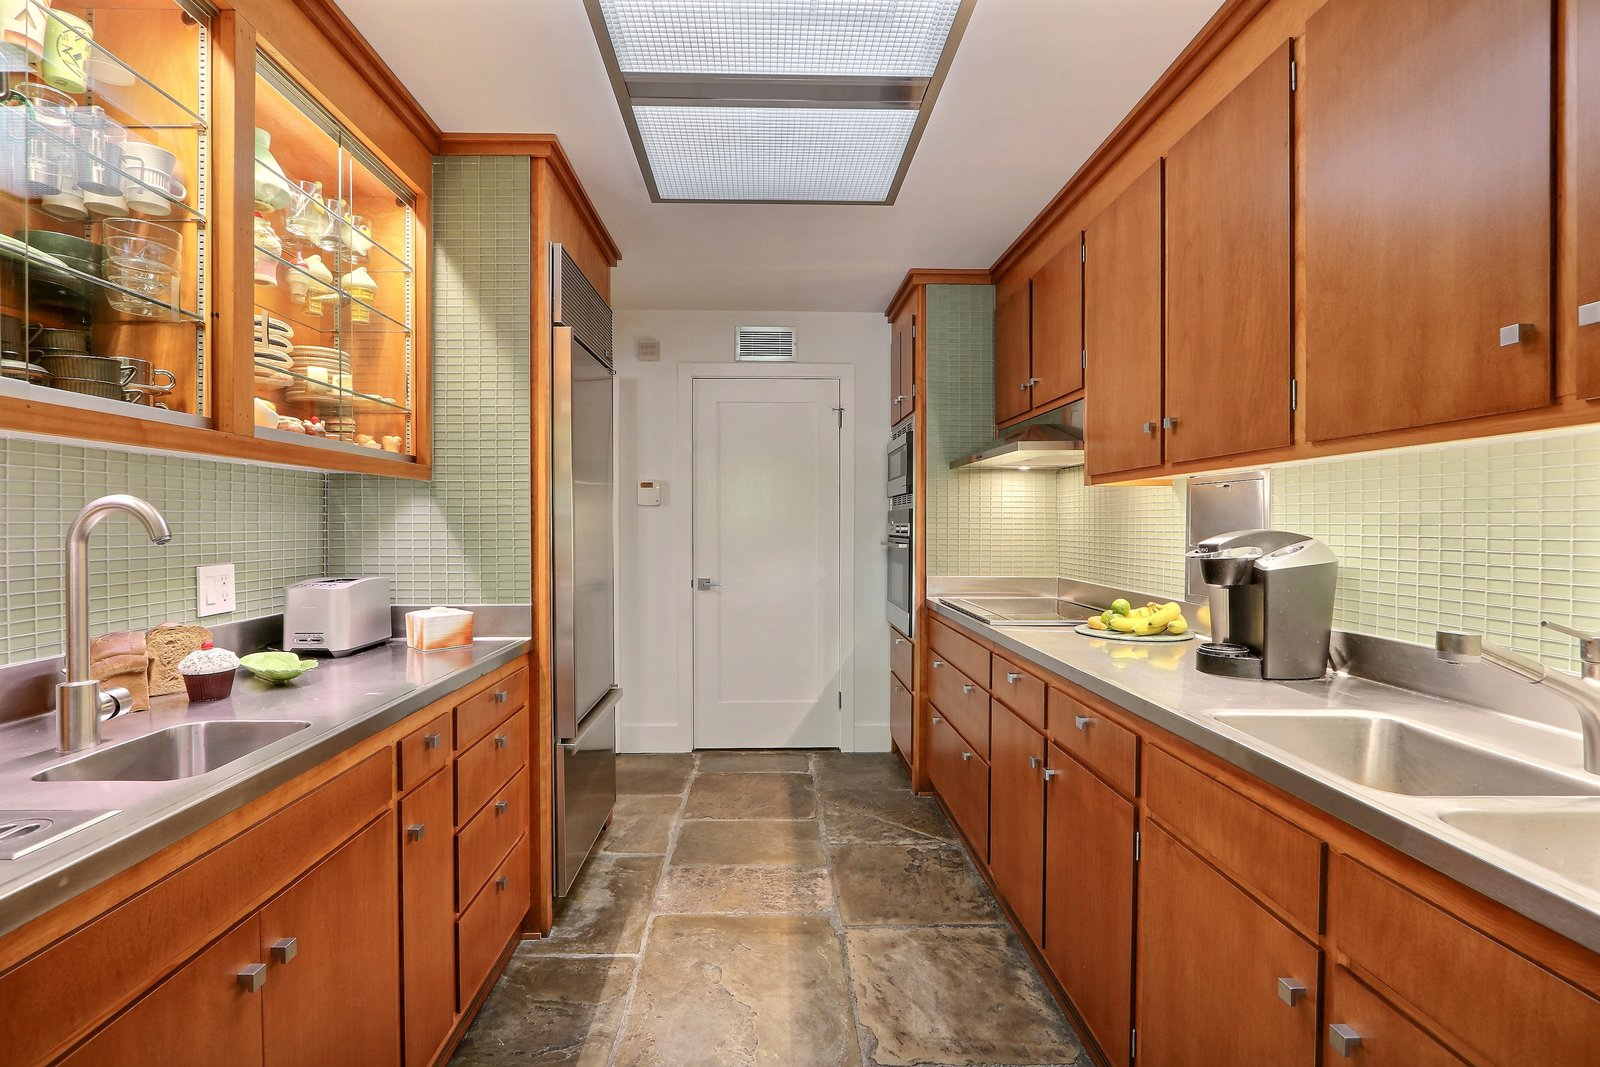 Kitchen, Refrigerator, Wall Oven, Cooktops, Range, Range Hood, Metal Counter, Wood Cabinet, Slate Floor, Glass Tile Backsplashe, and Ceiling Lighting The kitchen has been preserved and modernized with stainless steel Subzero, Fisher & Paykel appliances   The Hill Gowdy House